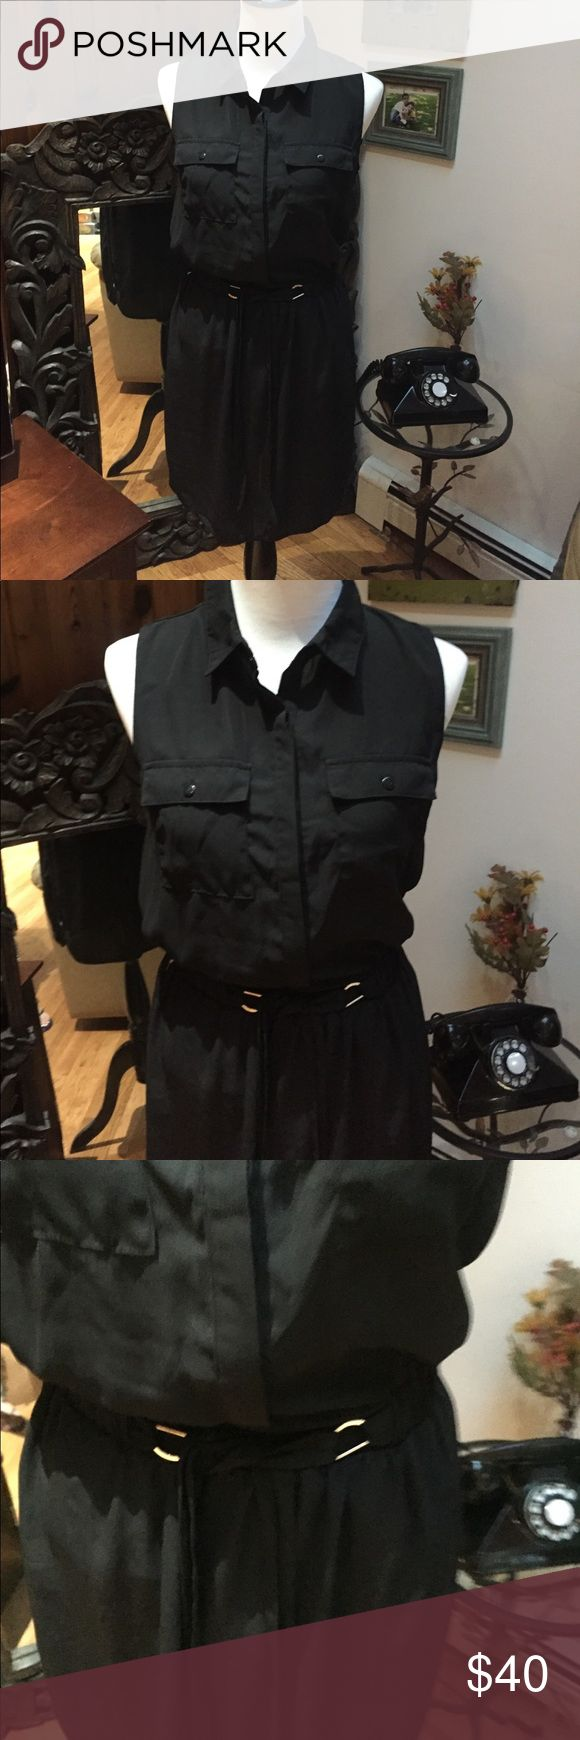 Interi sleeveless black dress tie belt INTERI sleeveless black dress tie belt  in size M with white on the side from the waist down. This is brand new, 65% polyester and 35% Rayon INTERI Dresses